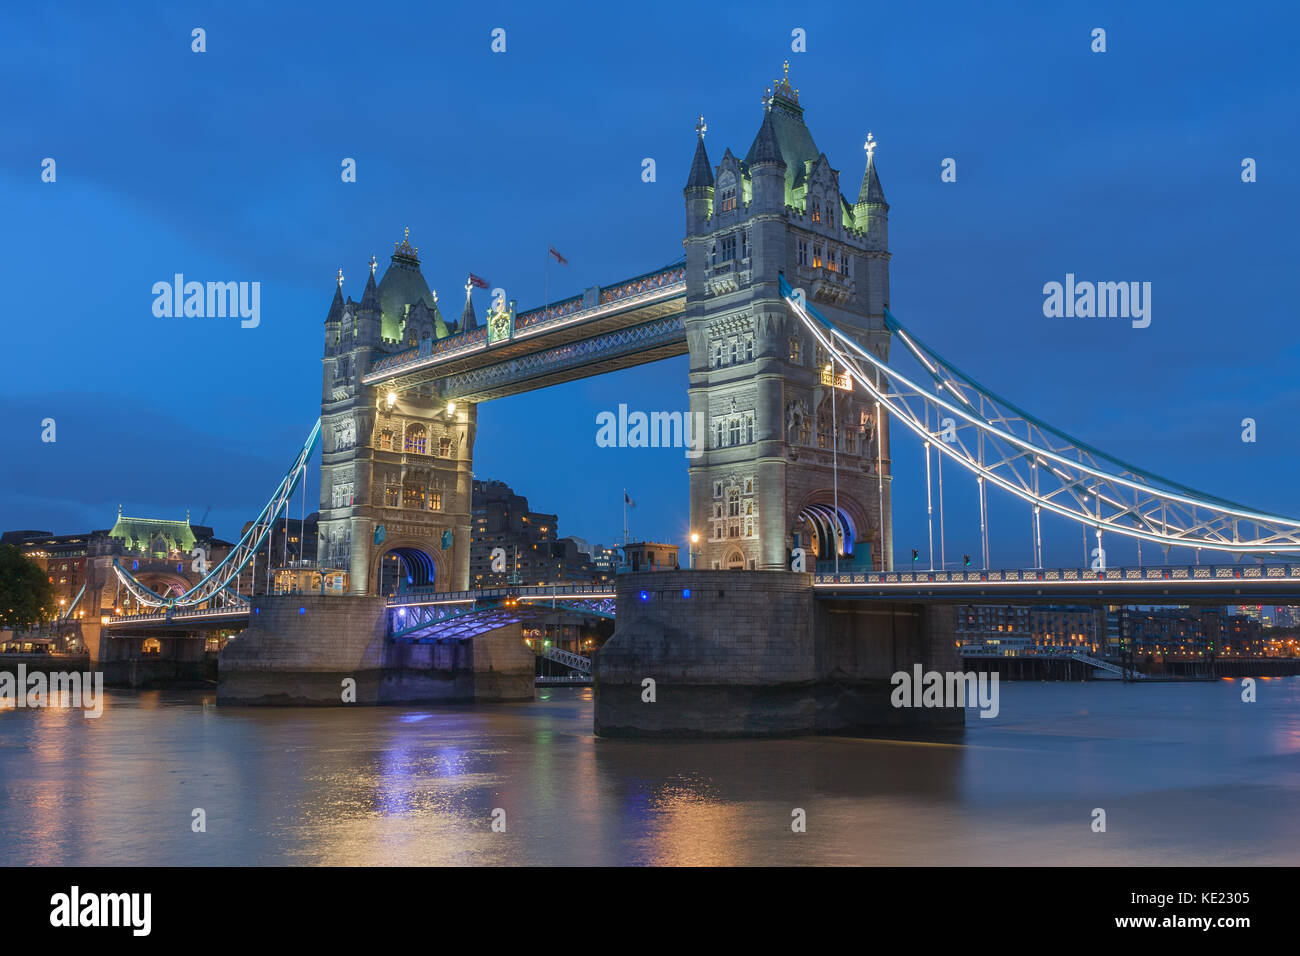 Tower bridge le soir, Londres, Angleterre. Photo Stock